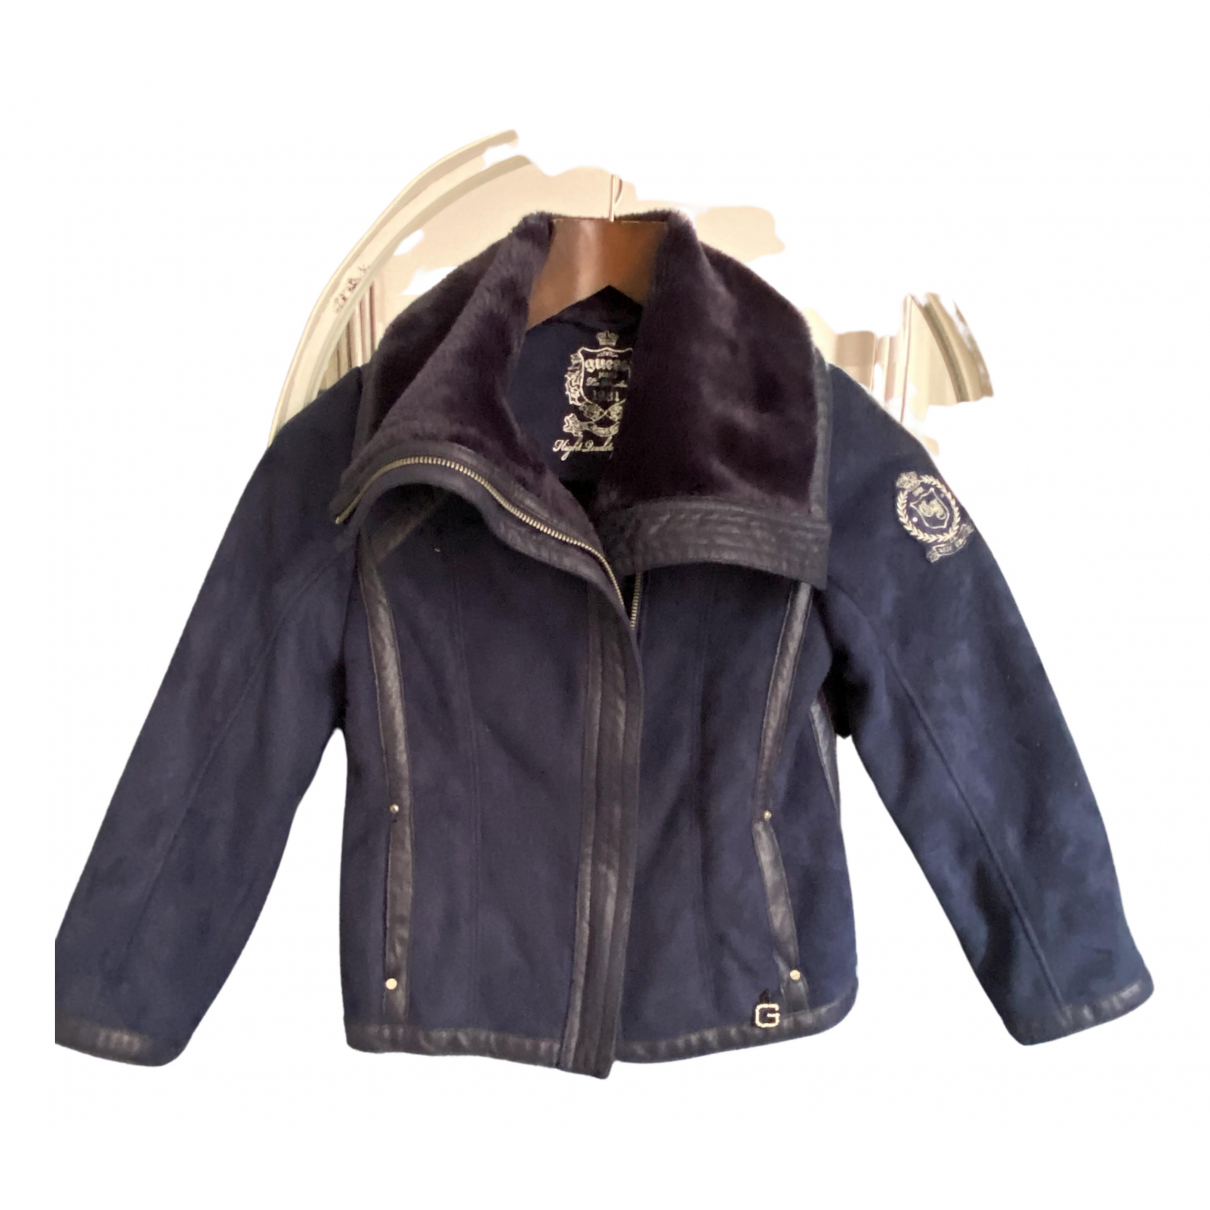 Guess \N Navy jacket & coat for Kids 8 years - up to 128cm FR